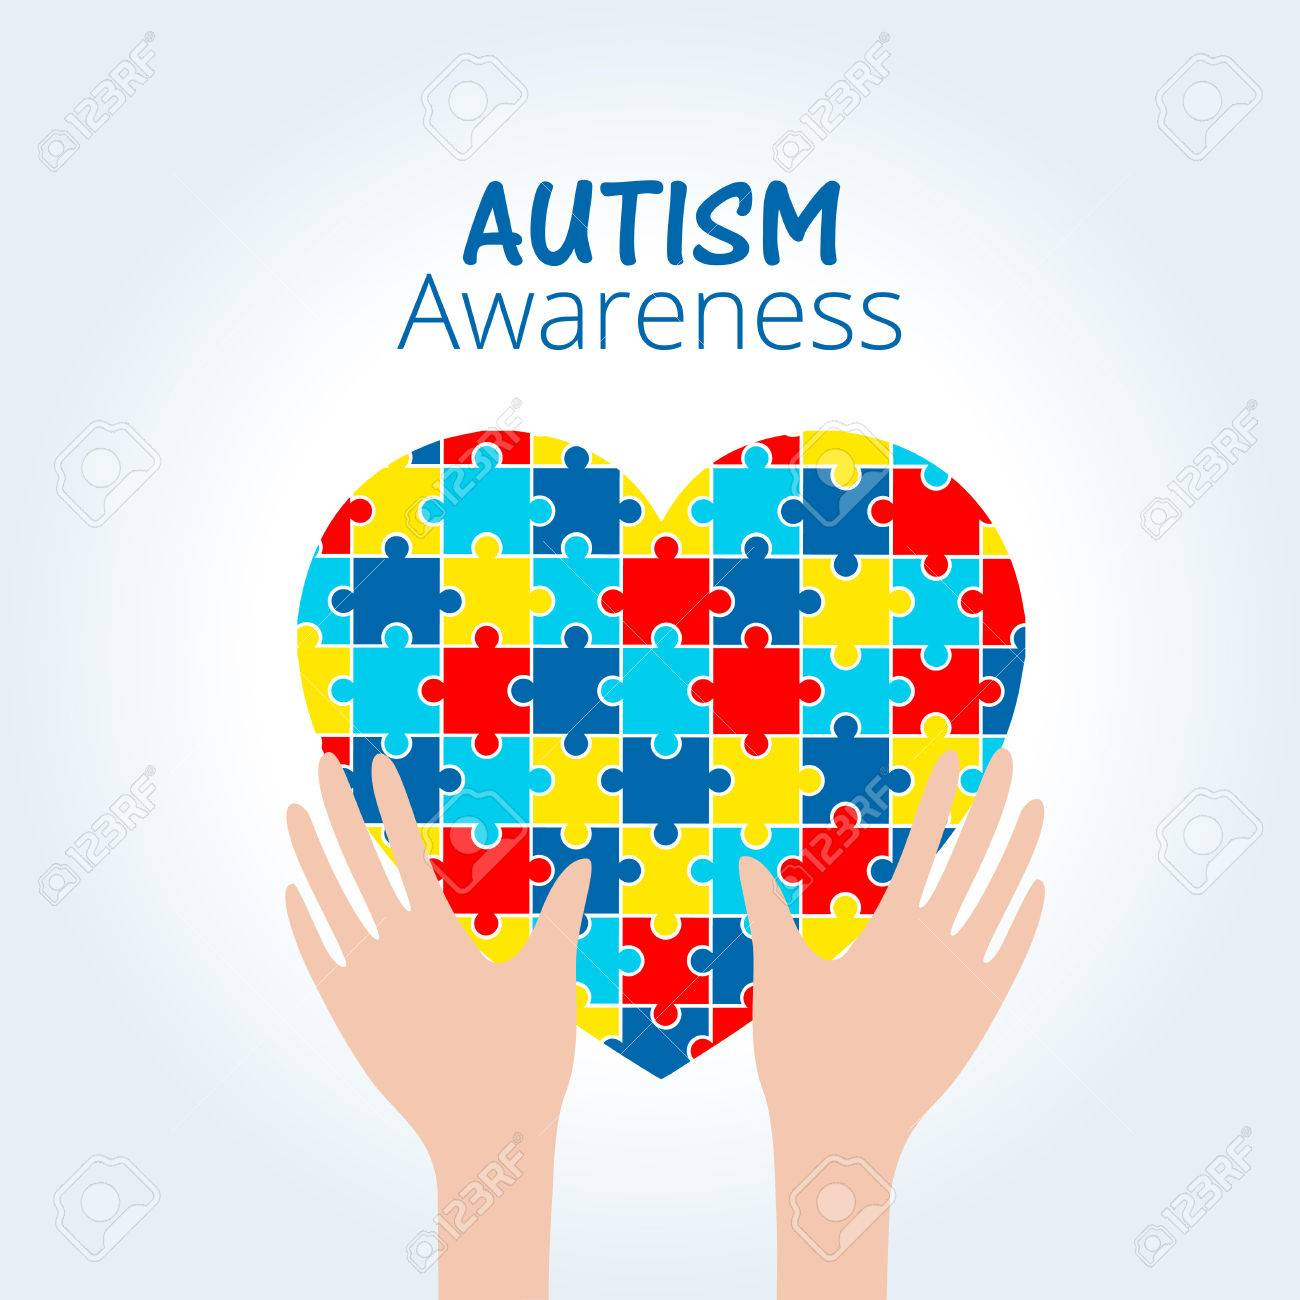 Autism Awareness Concept With Heart Of Puzzle Pieces As Symbol